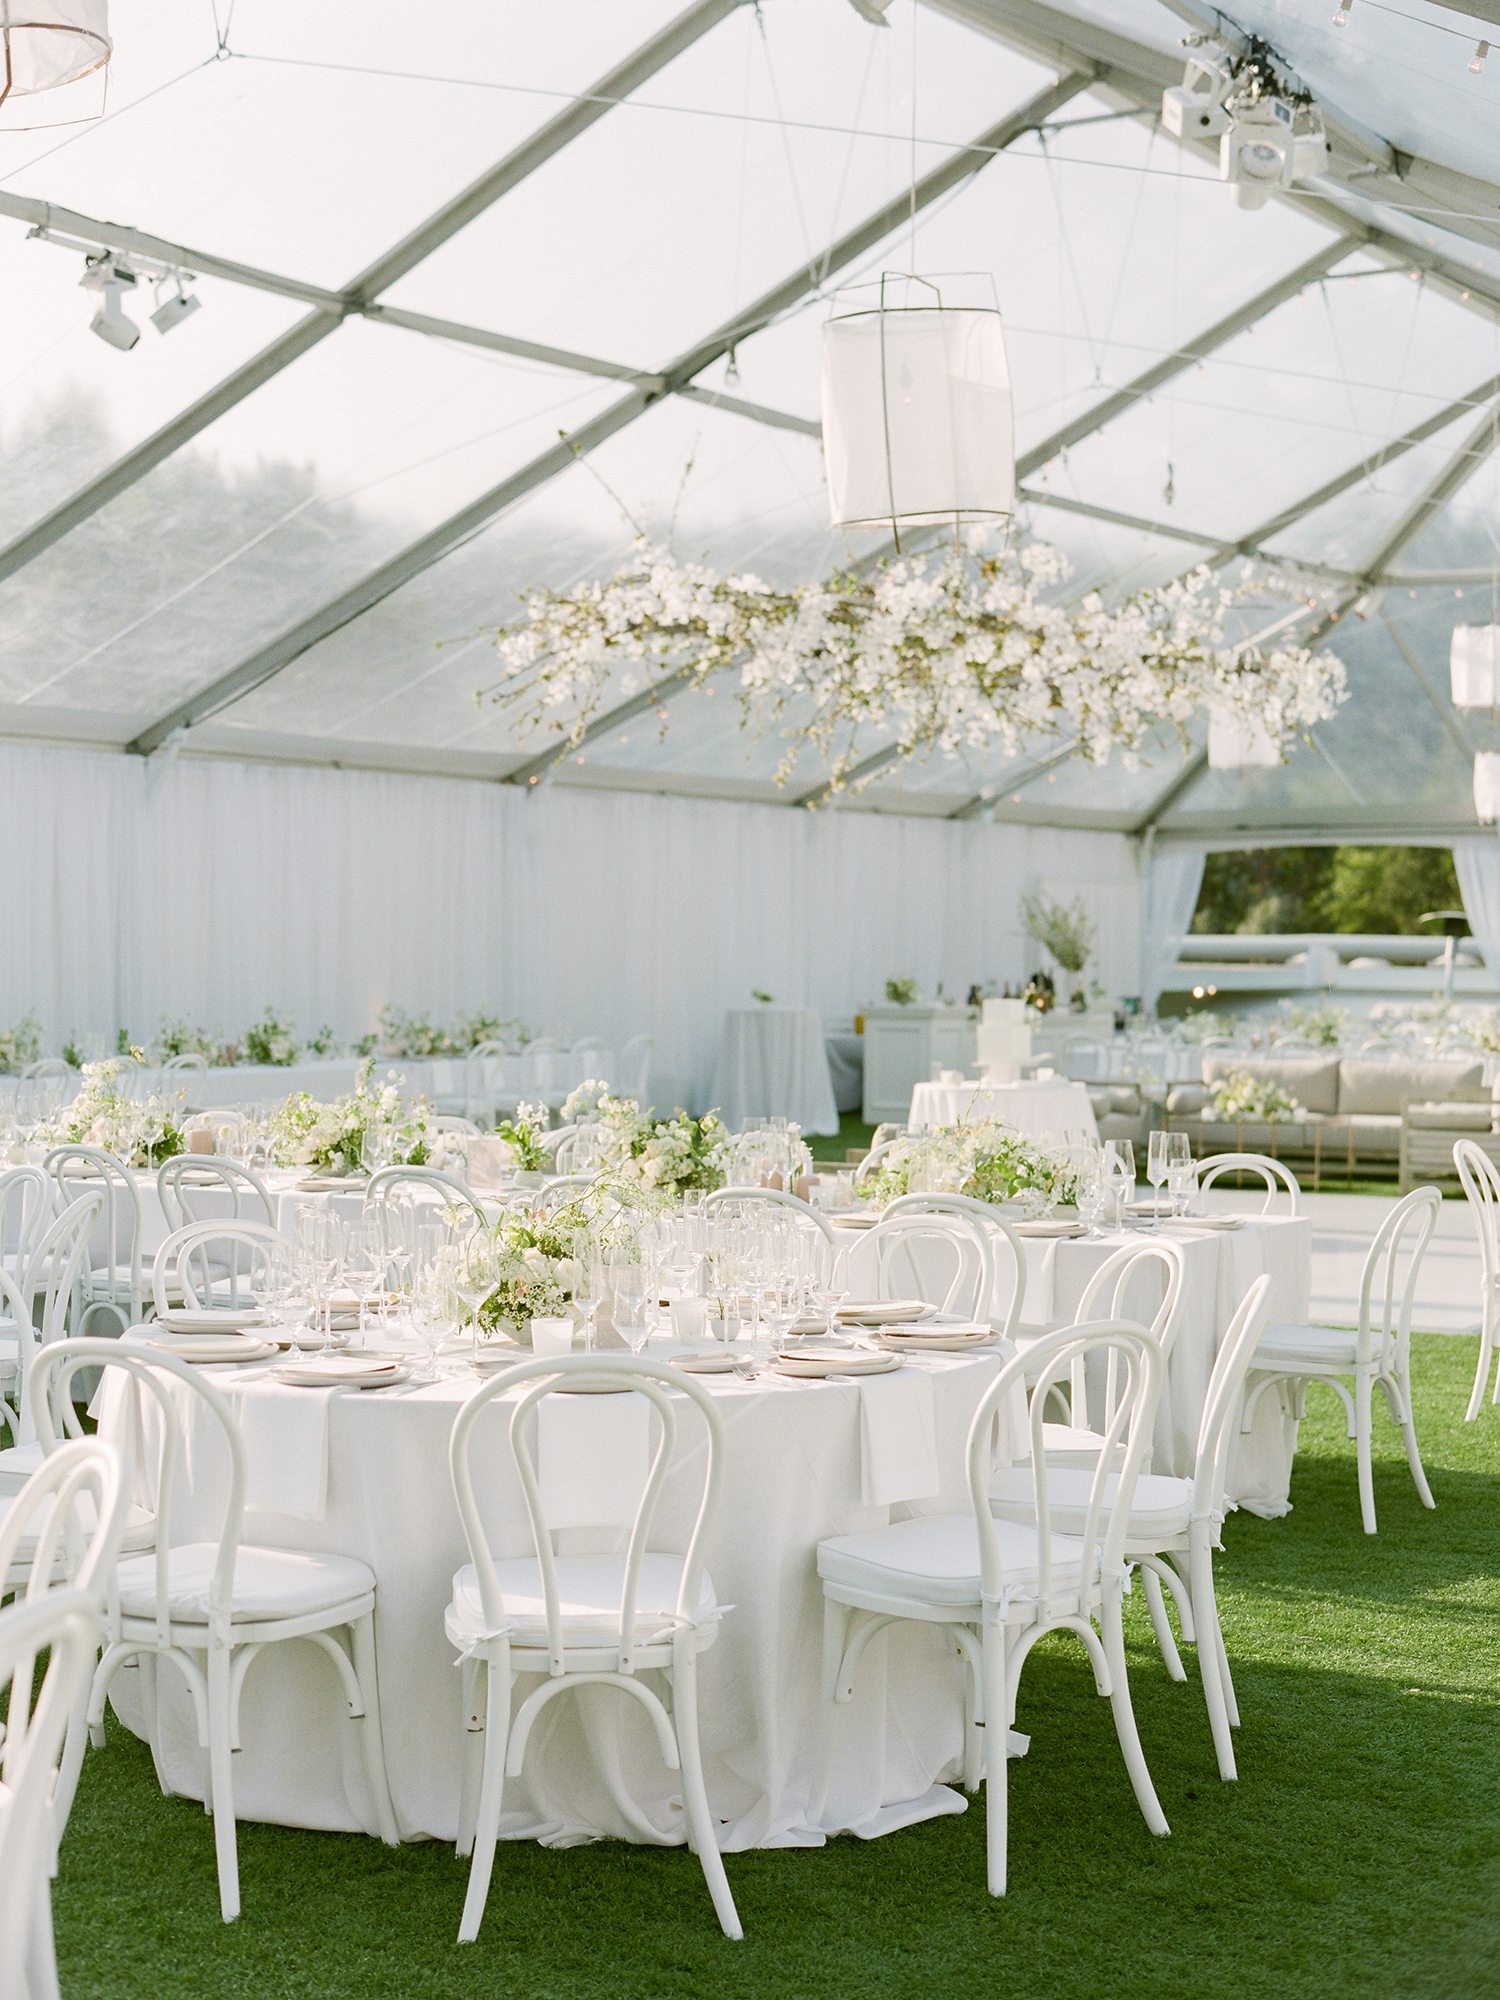 grace ceron wedding round tables in glass tent